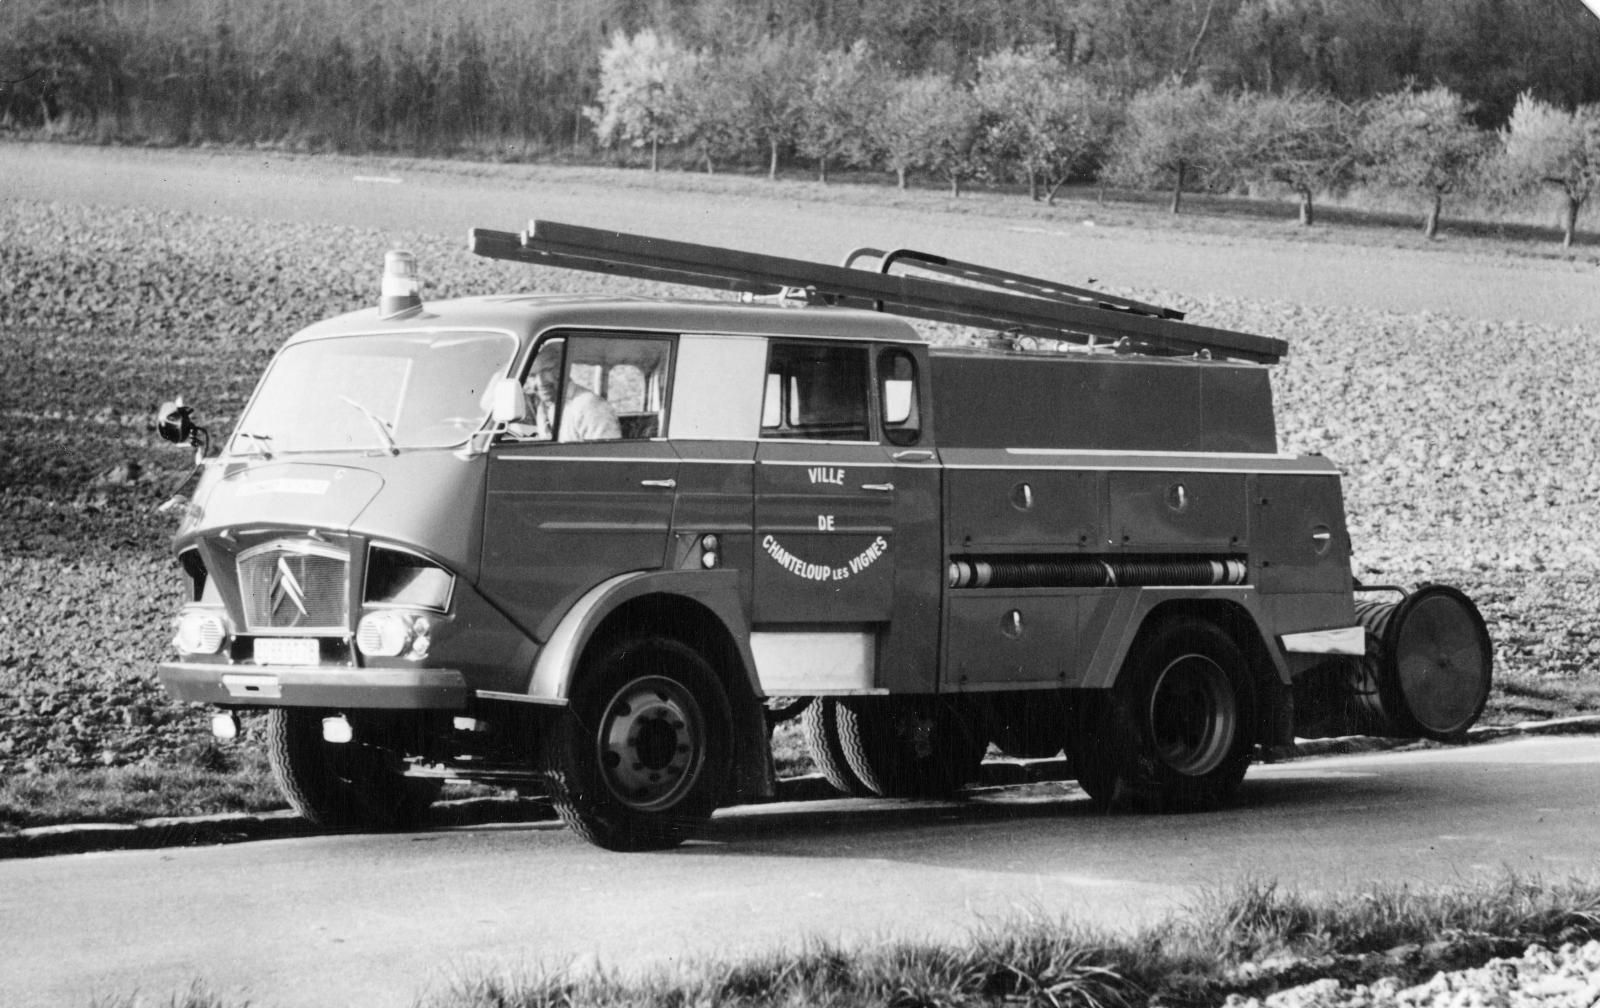 Camion Type 350 1967